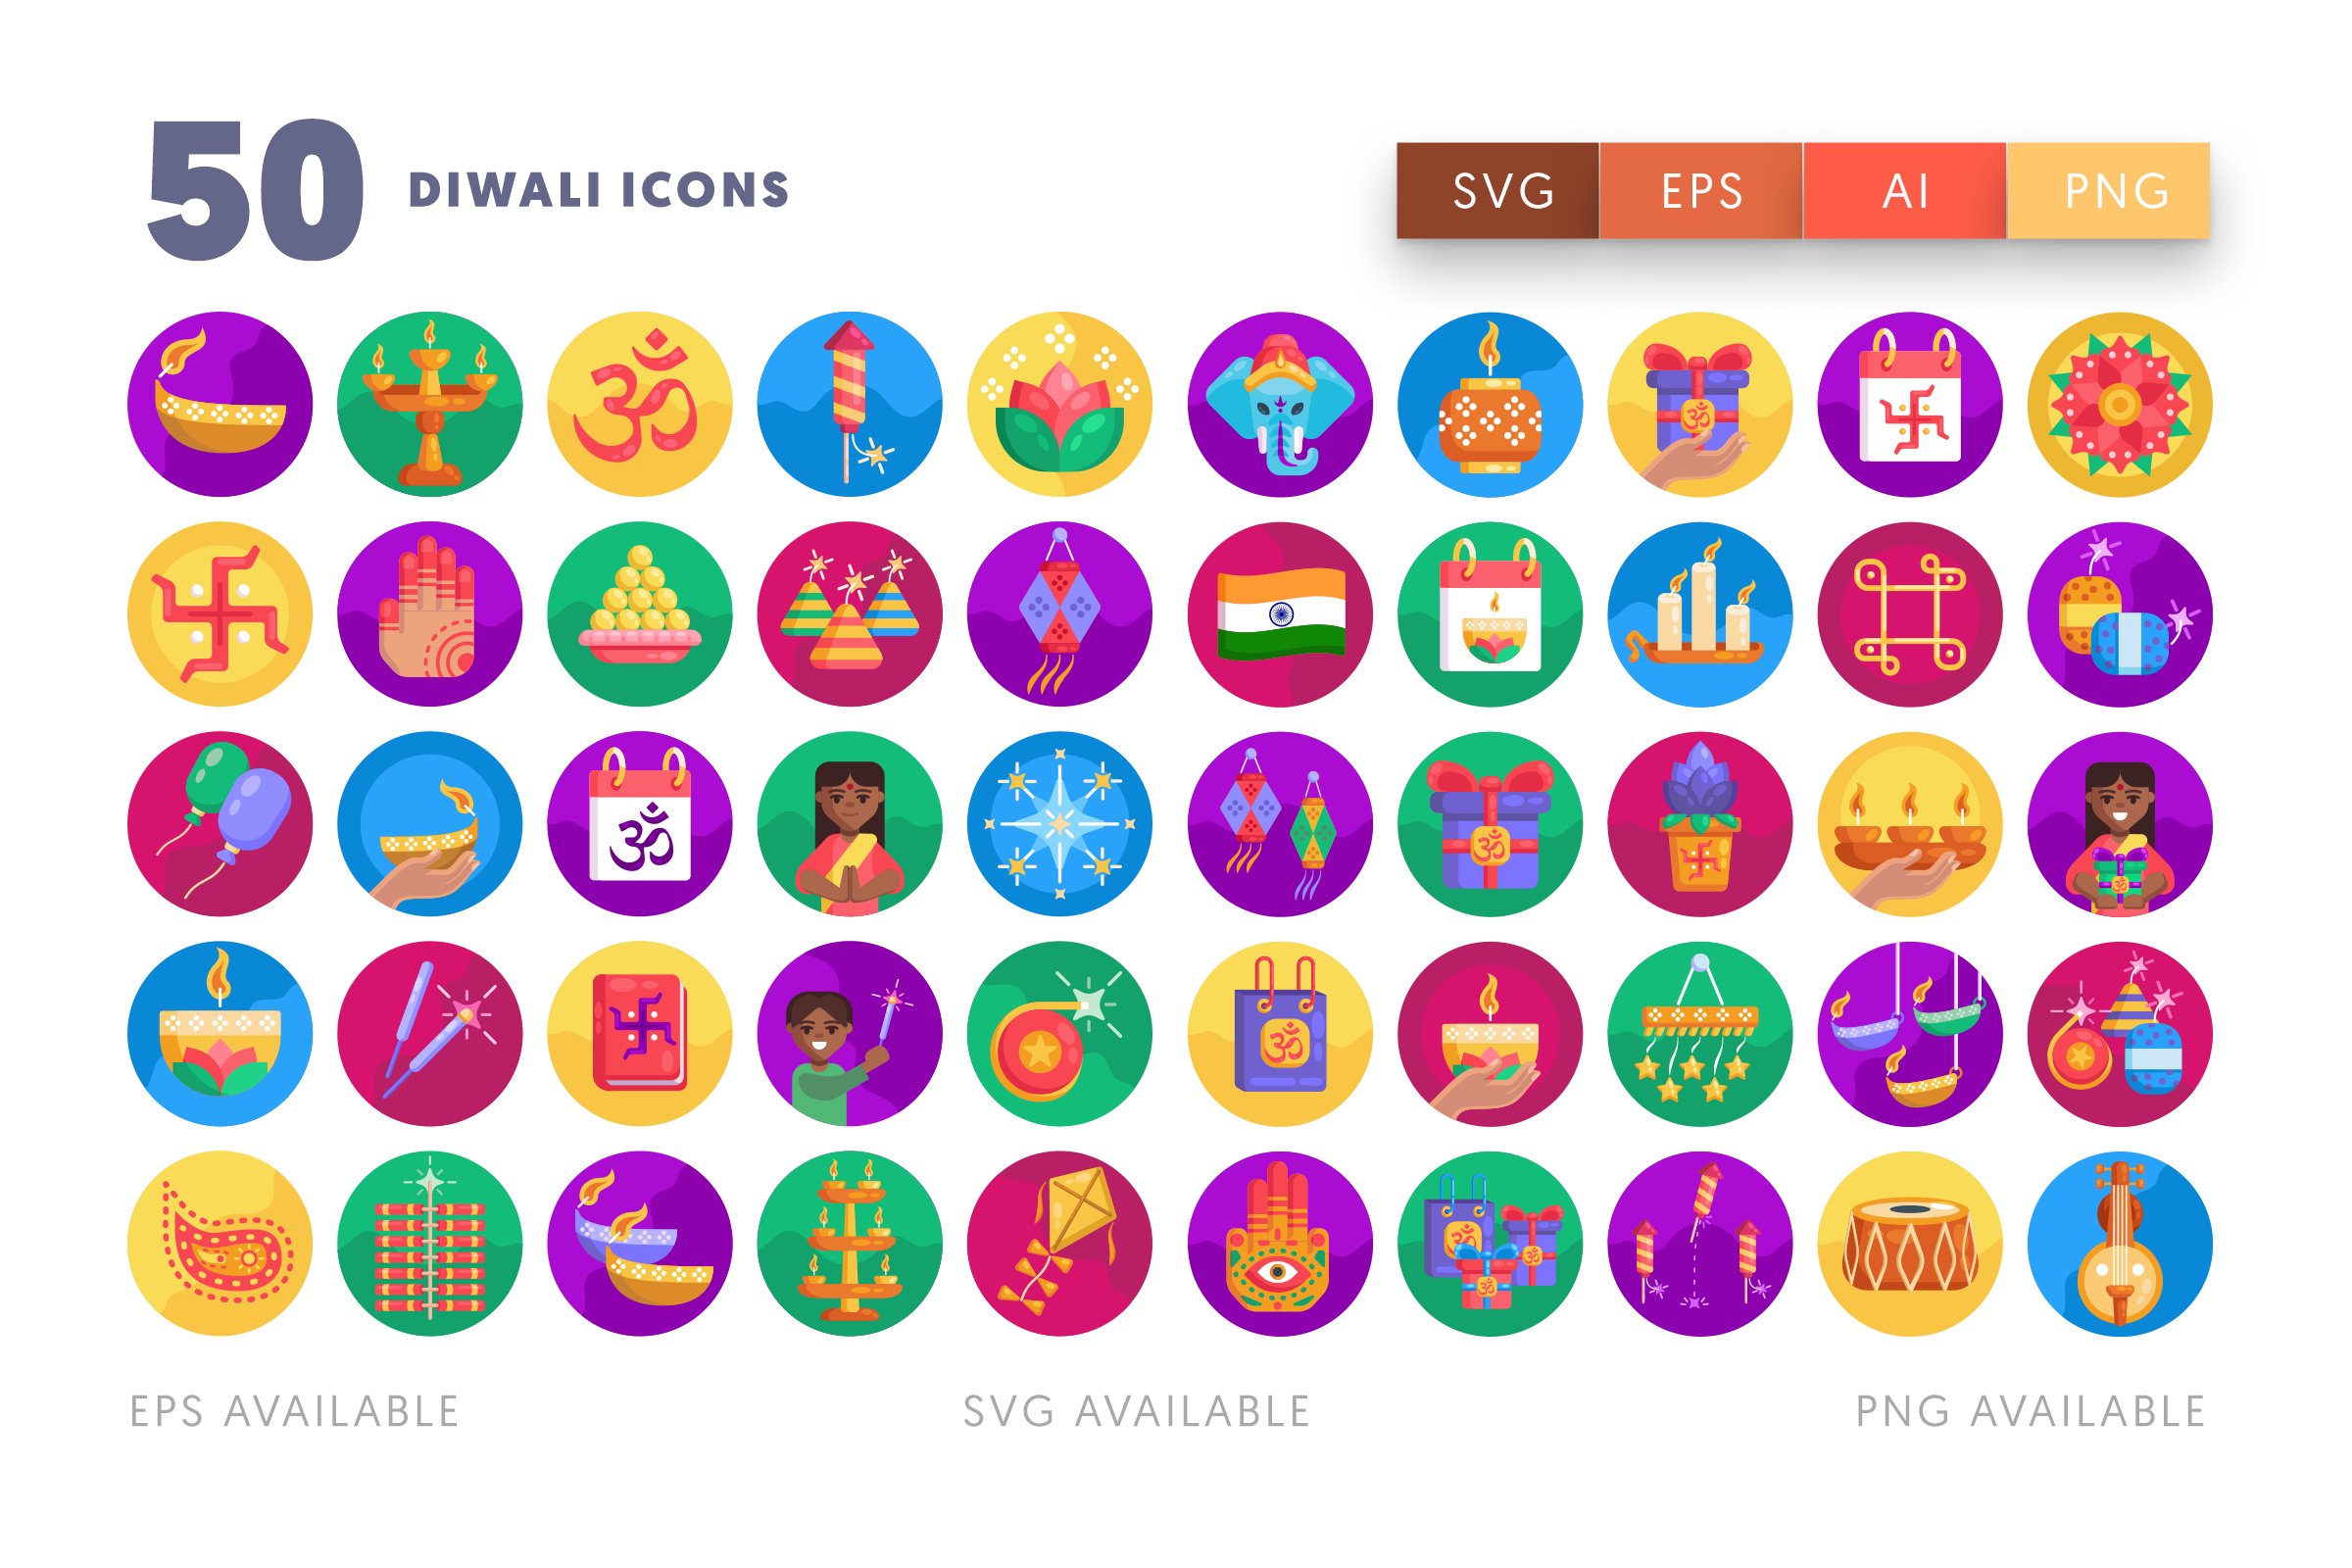 Diwali icons png/svg/eps